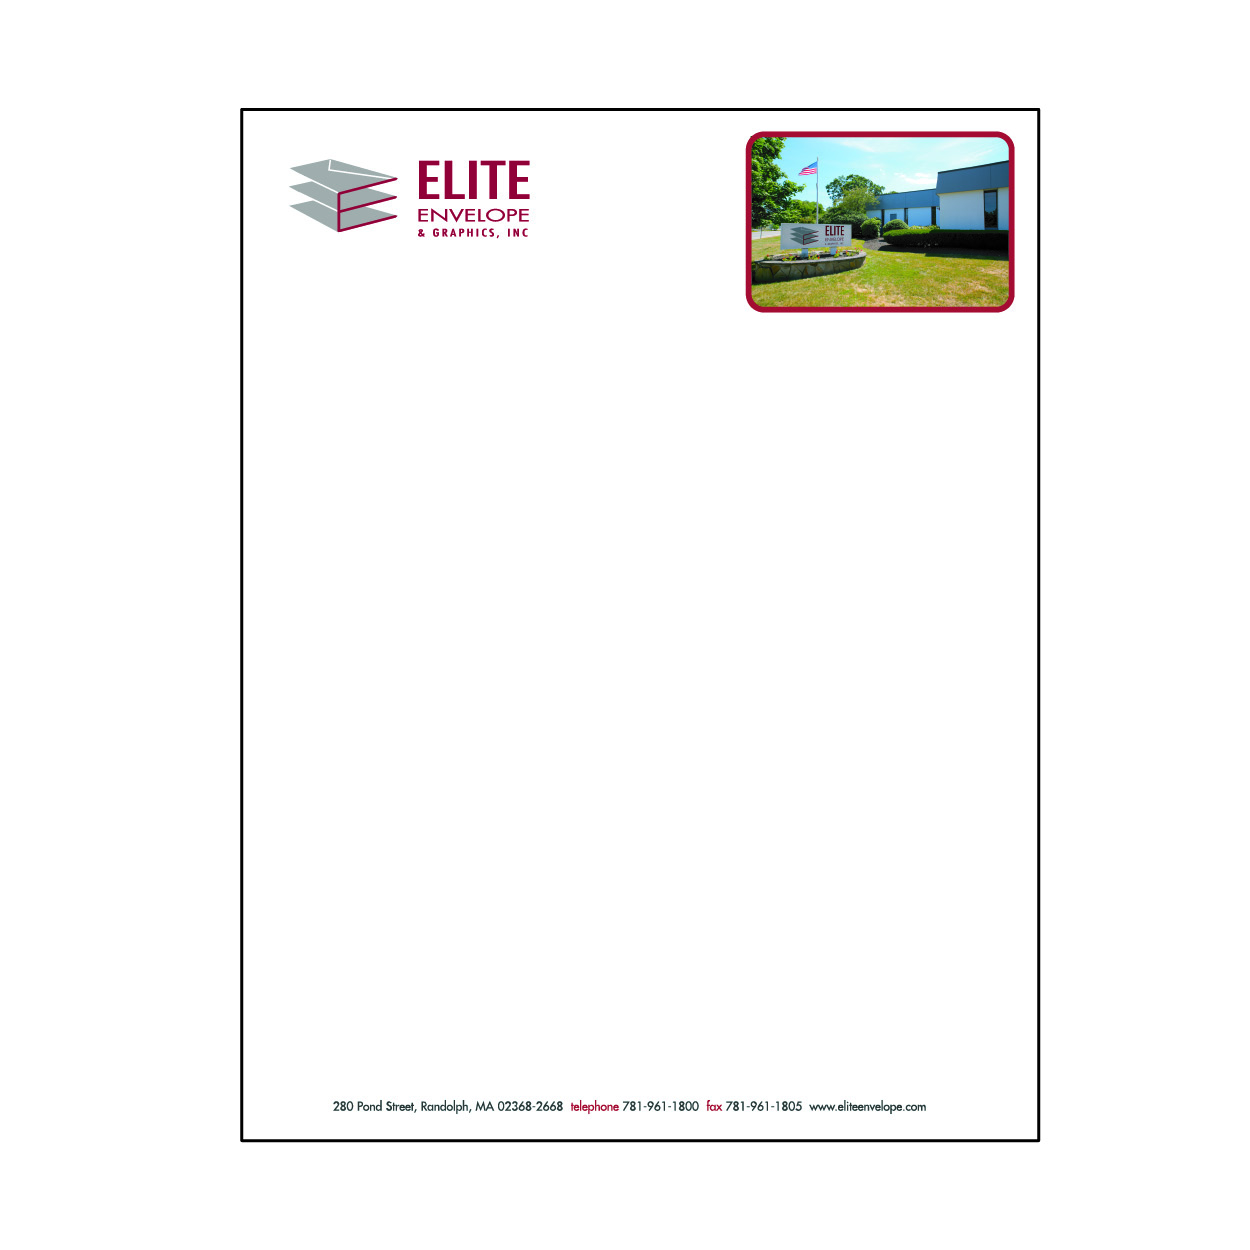 8 1/2 x 11 Letterhead and forms - four color